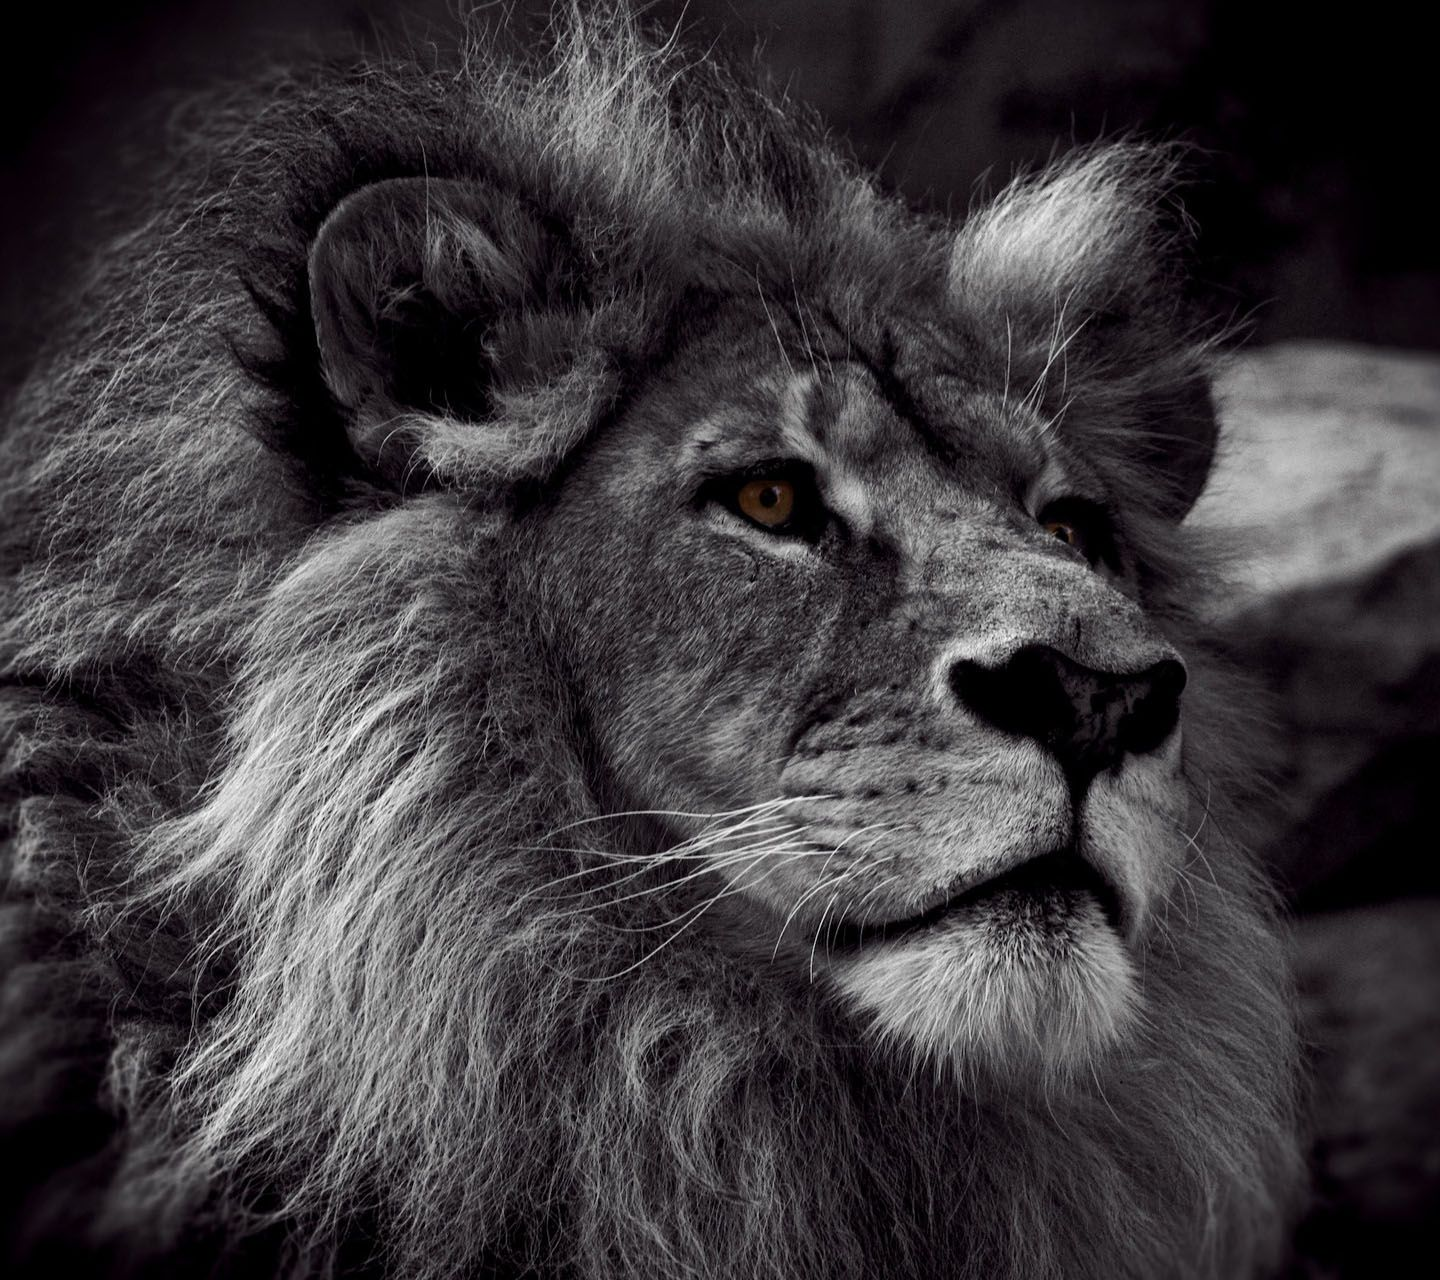 Lion photography full view and download lion black and white photo with resolution of